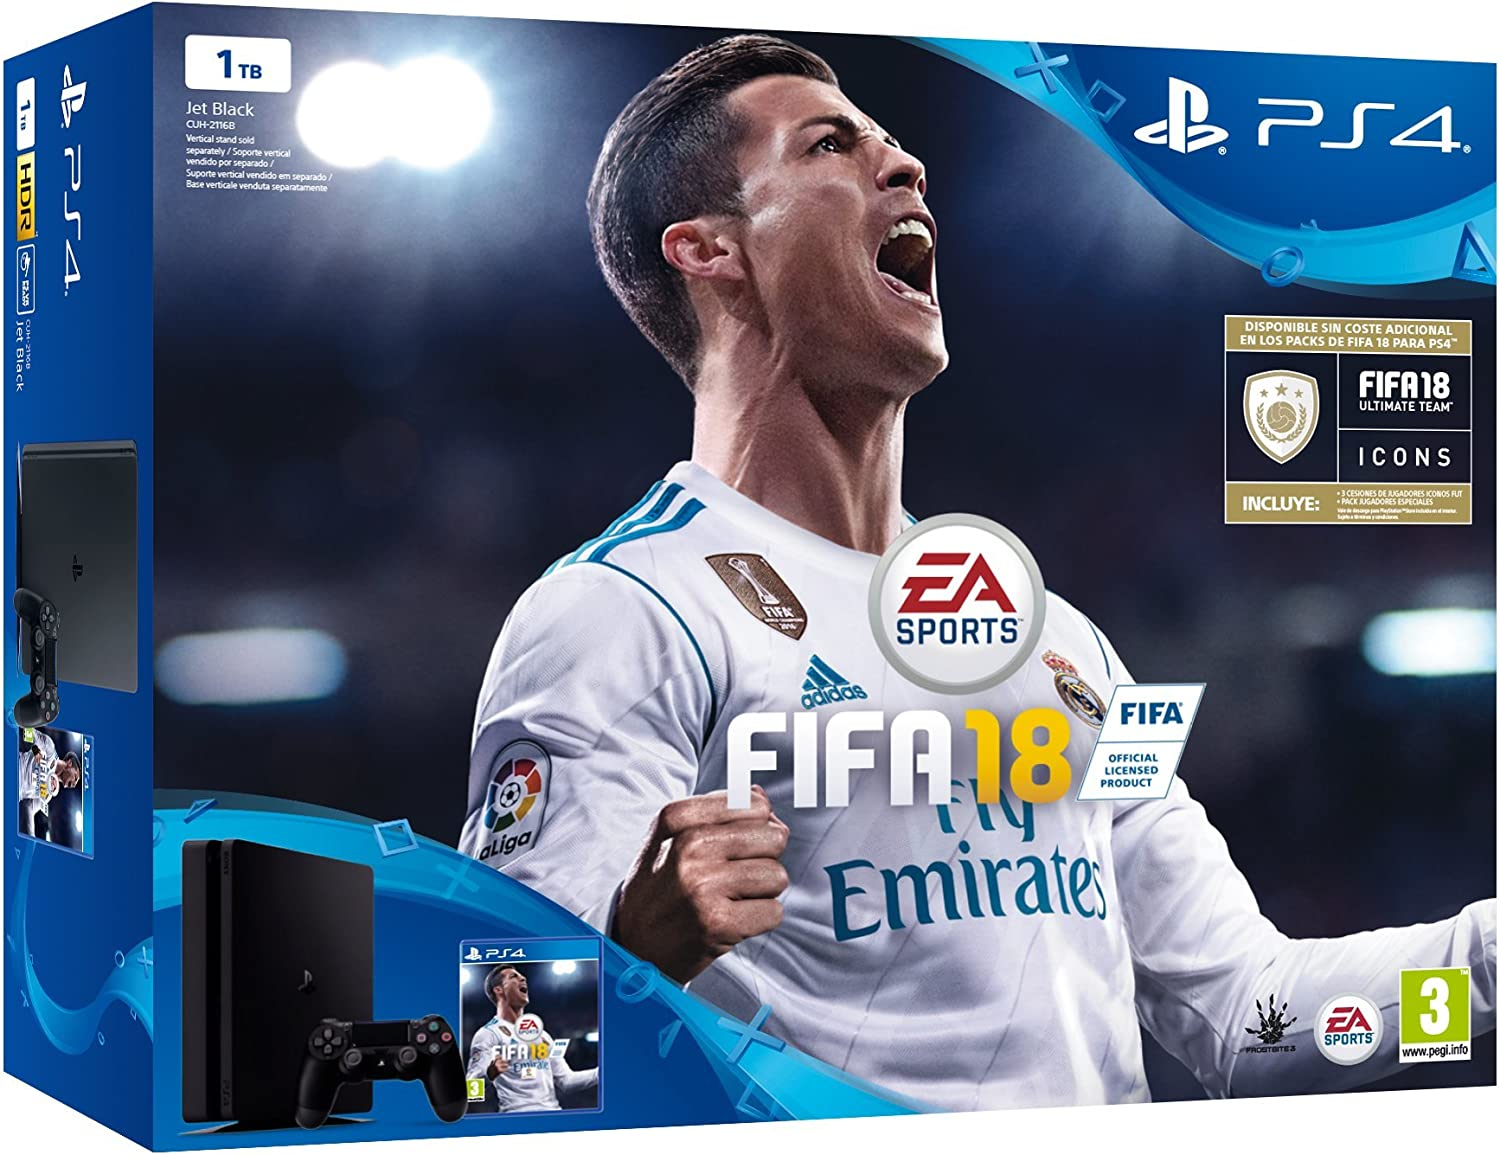 Sony, PlayStation 4 (PS4) - Consola de 1 TB + FIFA 18: Amazon.es: Videojuegos